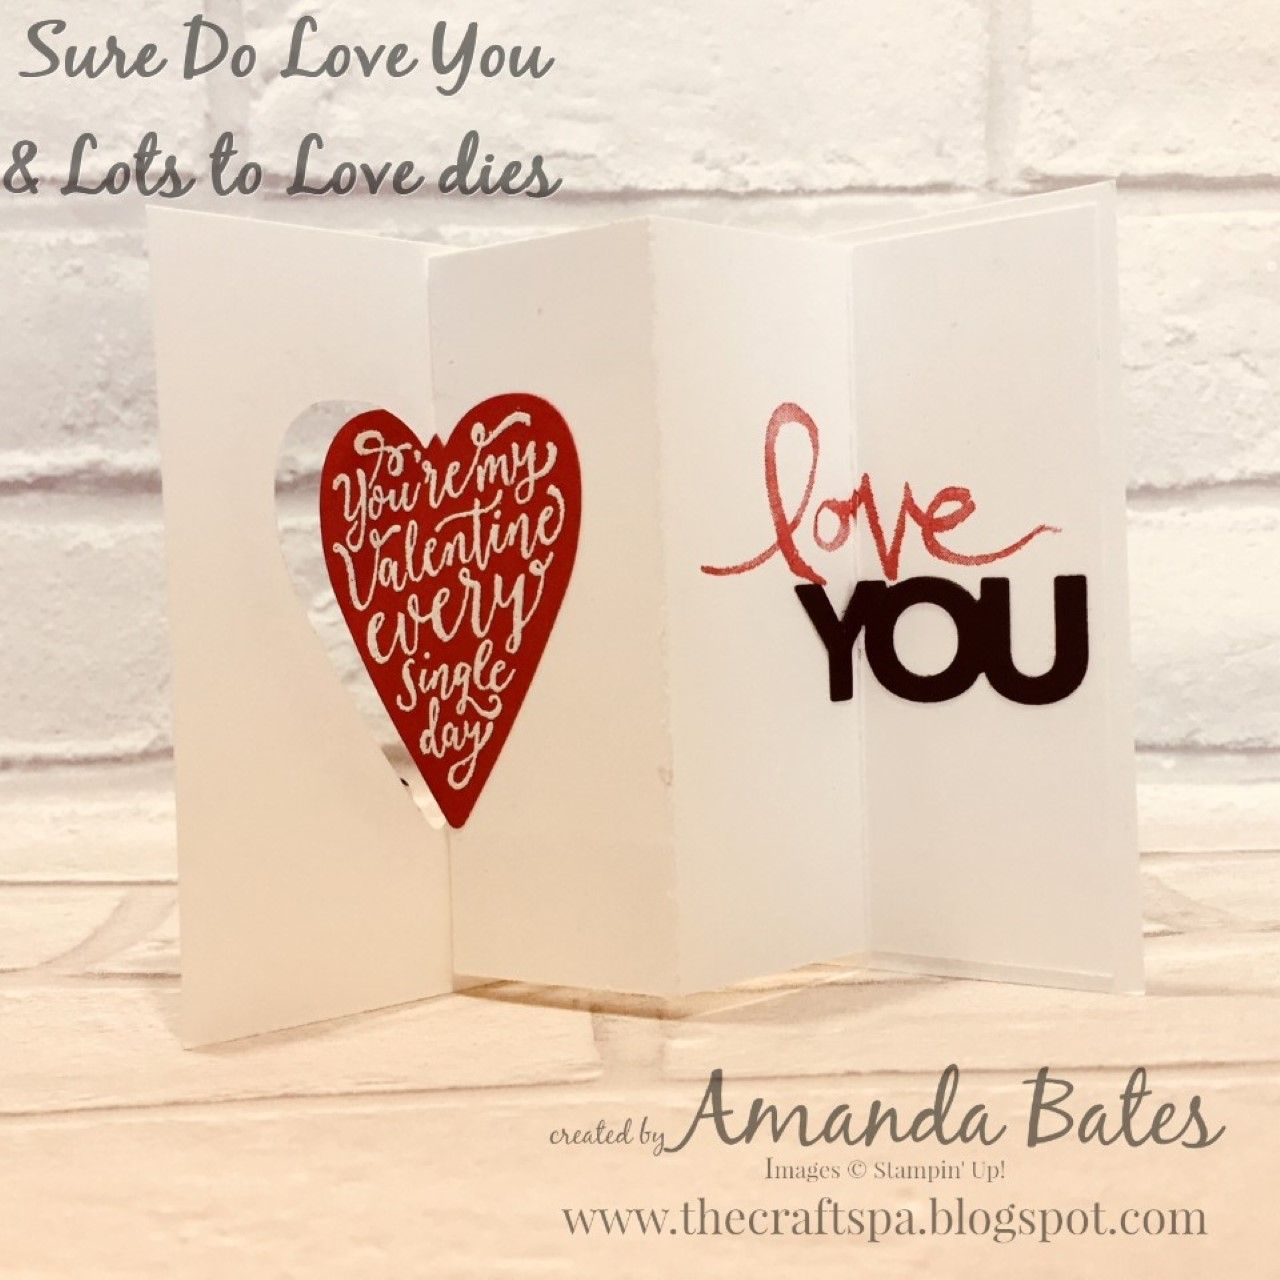 Mini Pop Out Swing Card Featuring Sure Do Love You By Amanda Bates